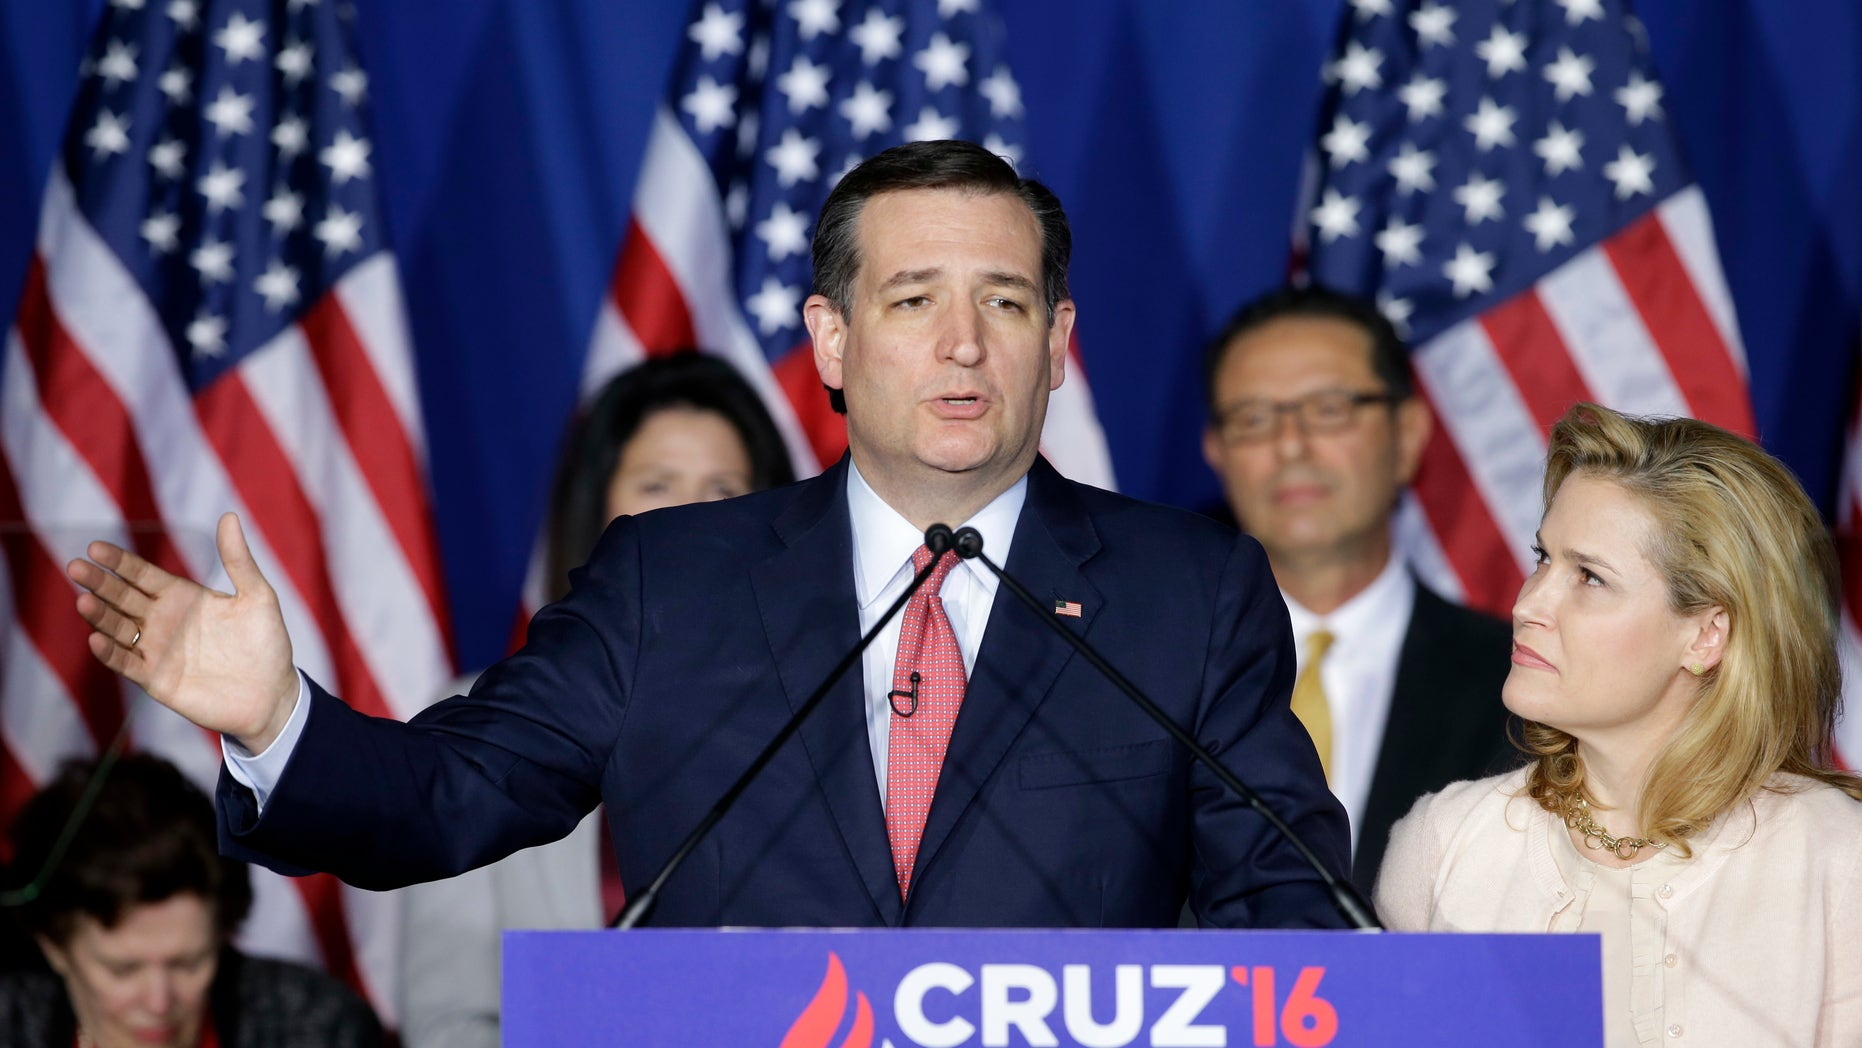 Republican presidential candidate, Sen. Ted Cruz, R-Texas, speaks as his wife, Heidi, listens during a primary night campaign event, Tuesday, May 3, 2016, in Indianapolis. Cruz ended his presidential campaign, eliminating the biggest impediment to Donald Trump's march to the Republican nomination. (AP Photo/Darron Cummings)